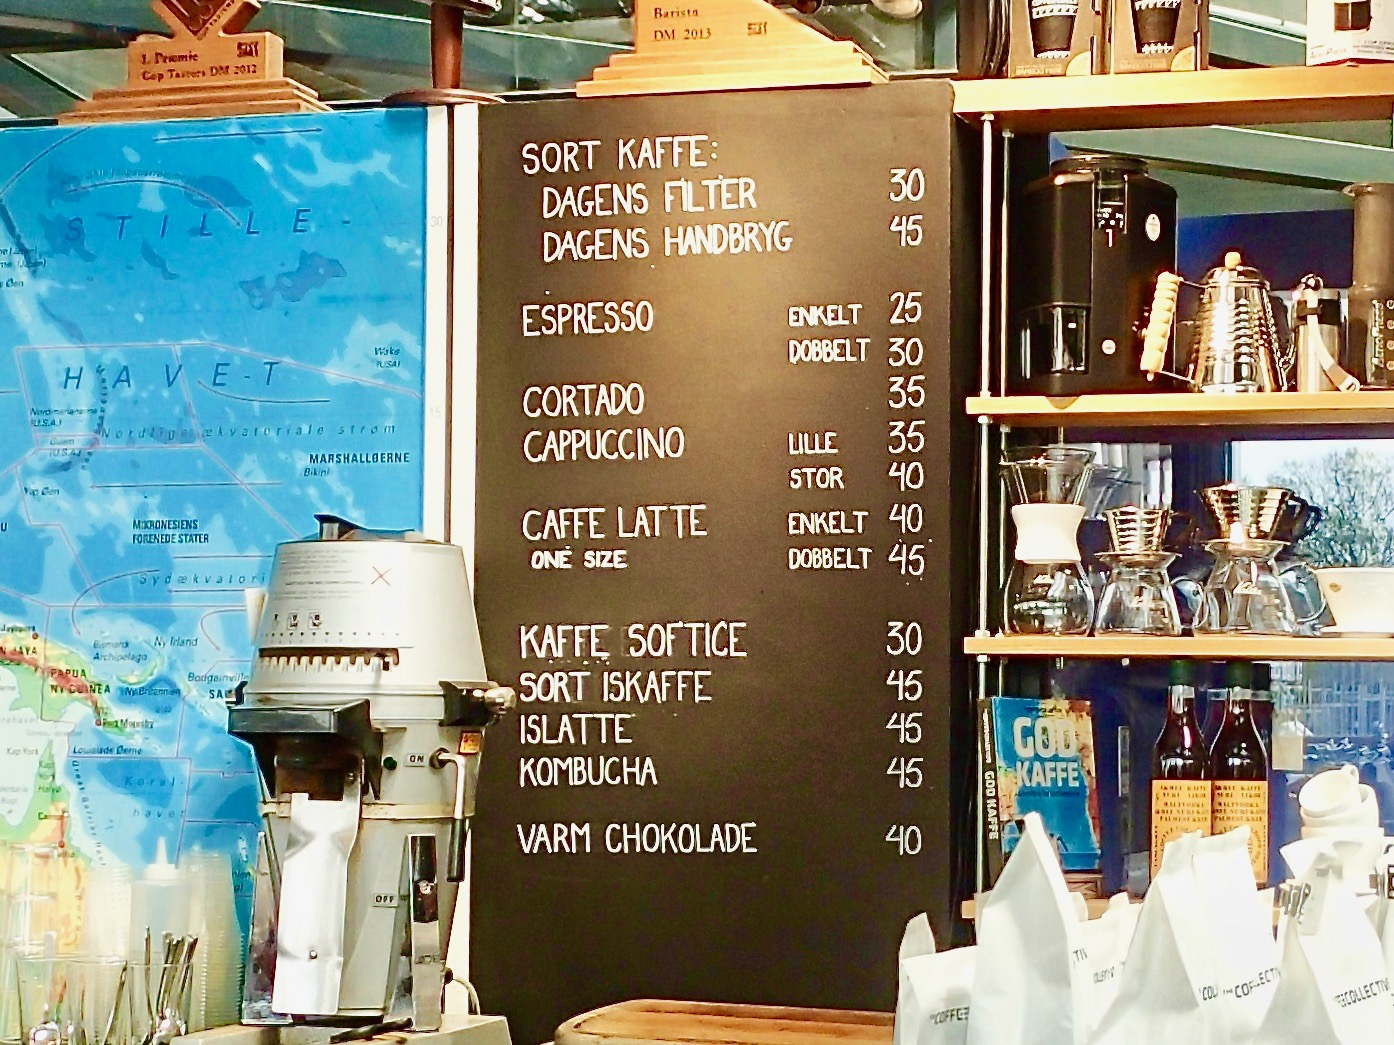 The Coffee Collective menu